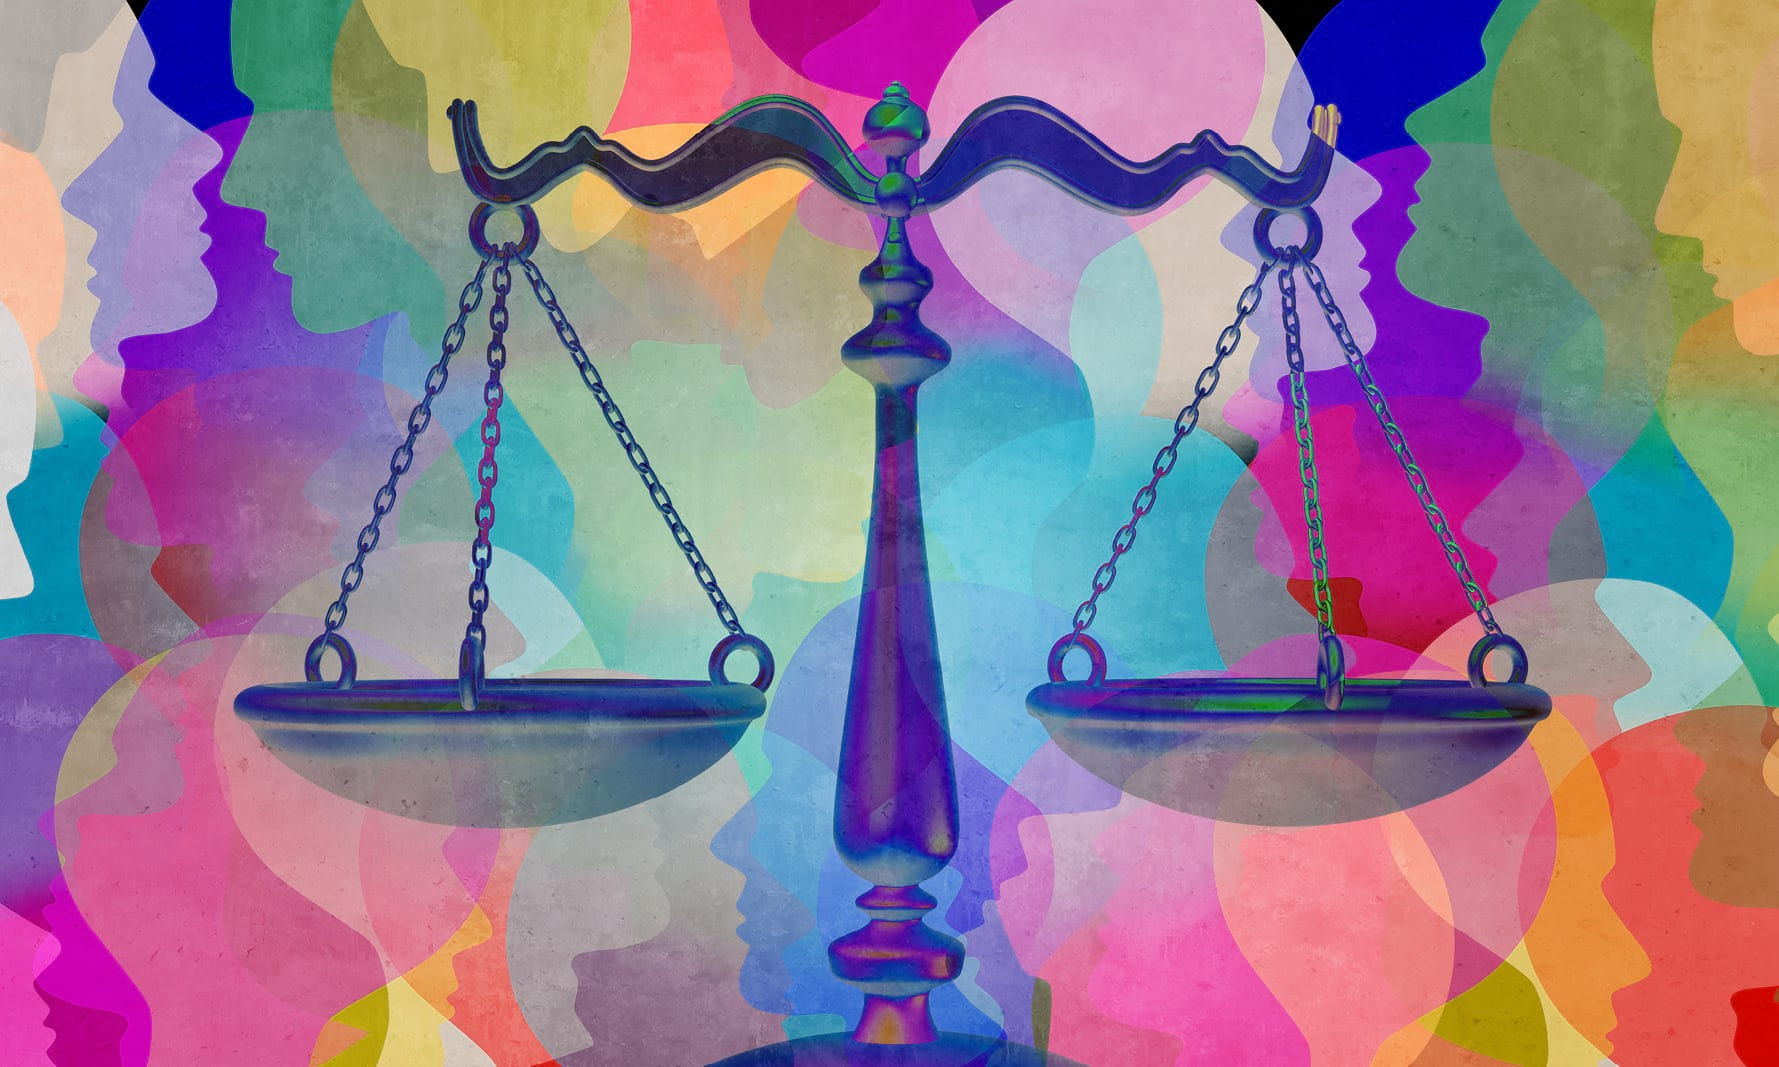 who are integrative lawyers, who, are, integrative, lawyers, law, people, peacemakers, collaborators, healers, j kim wright, rhinannon thomas, sean mason, new, legal, system